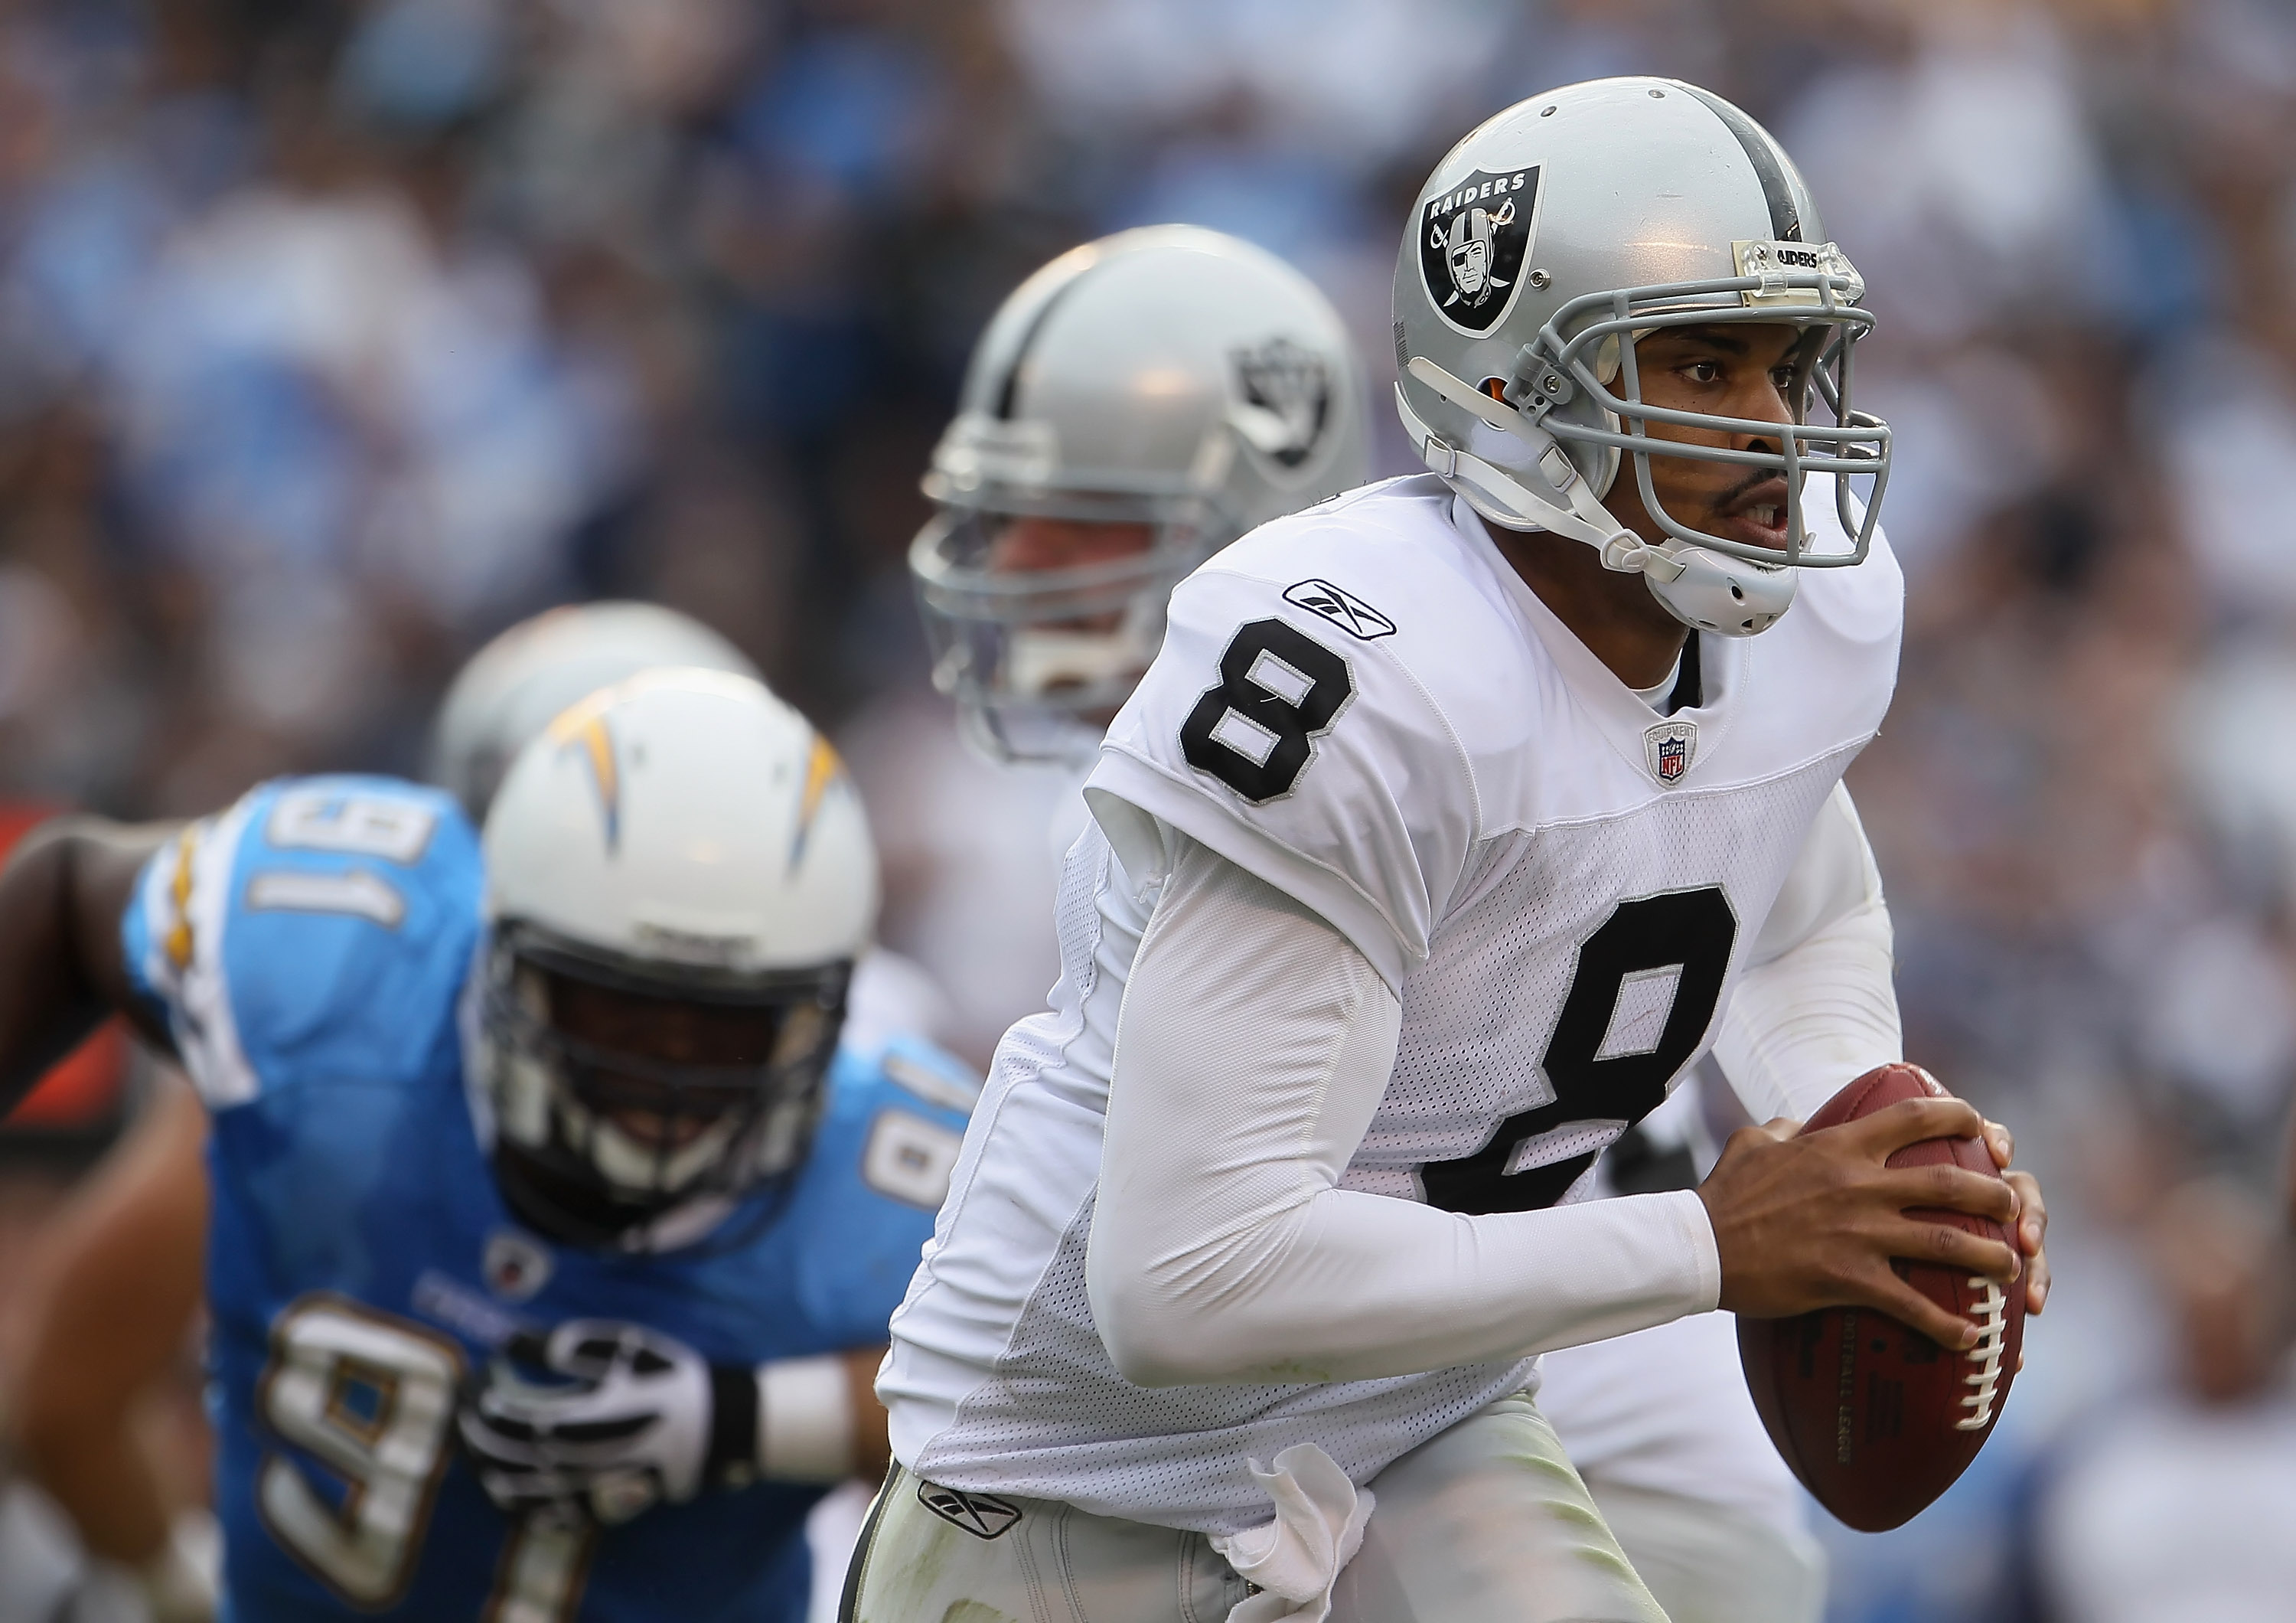 ef4e41d7 Oakland Raiders' Amazing Race: How They Win AFC West and Make the ...